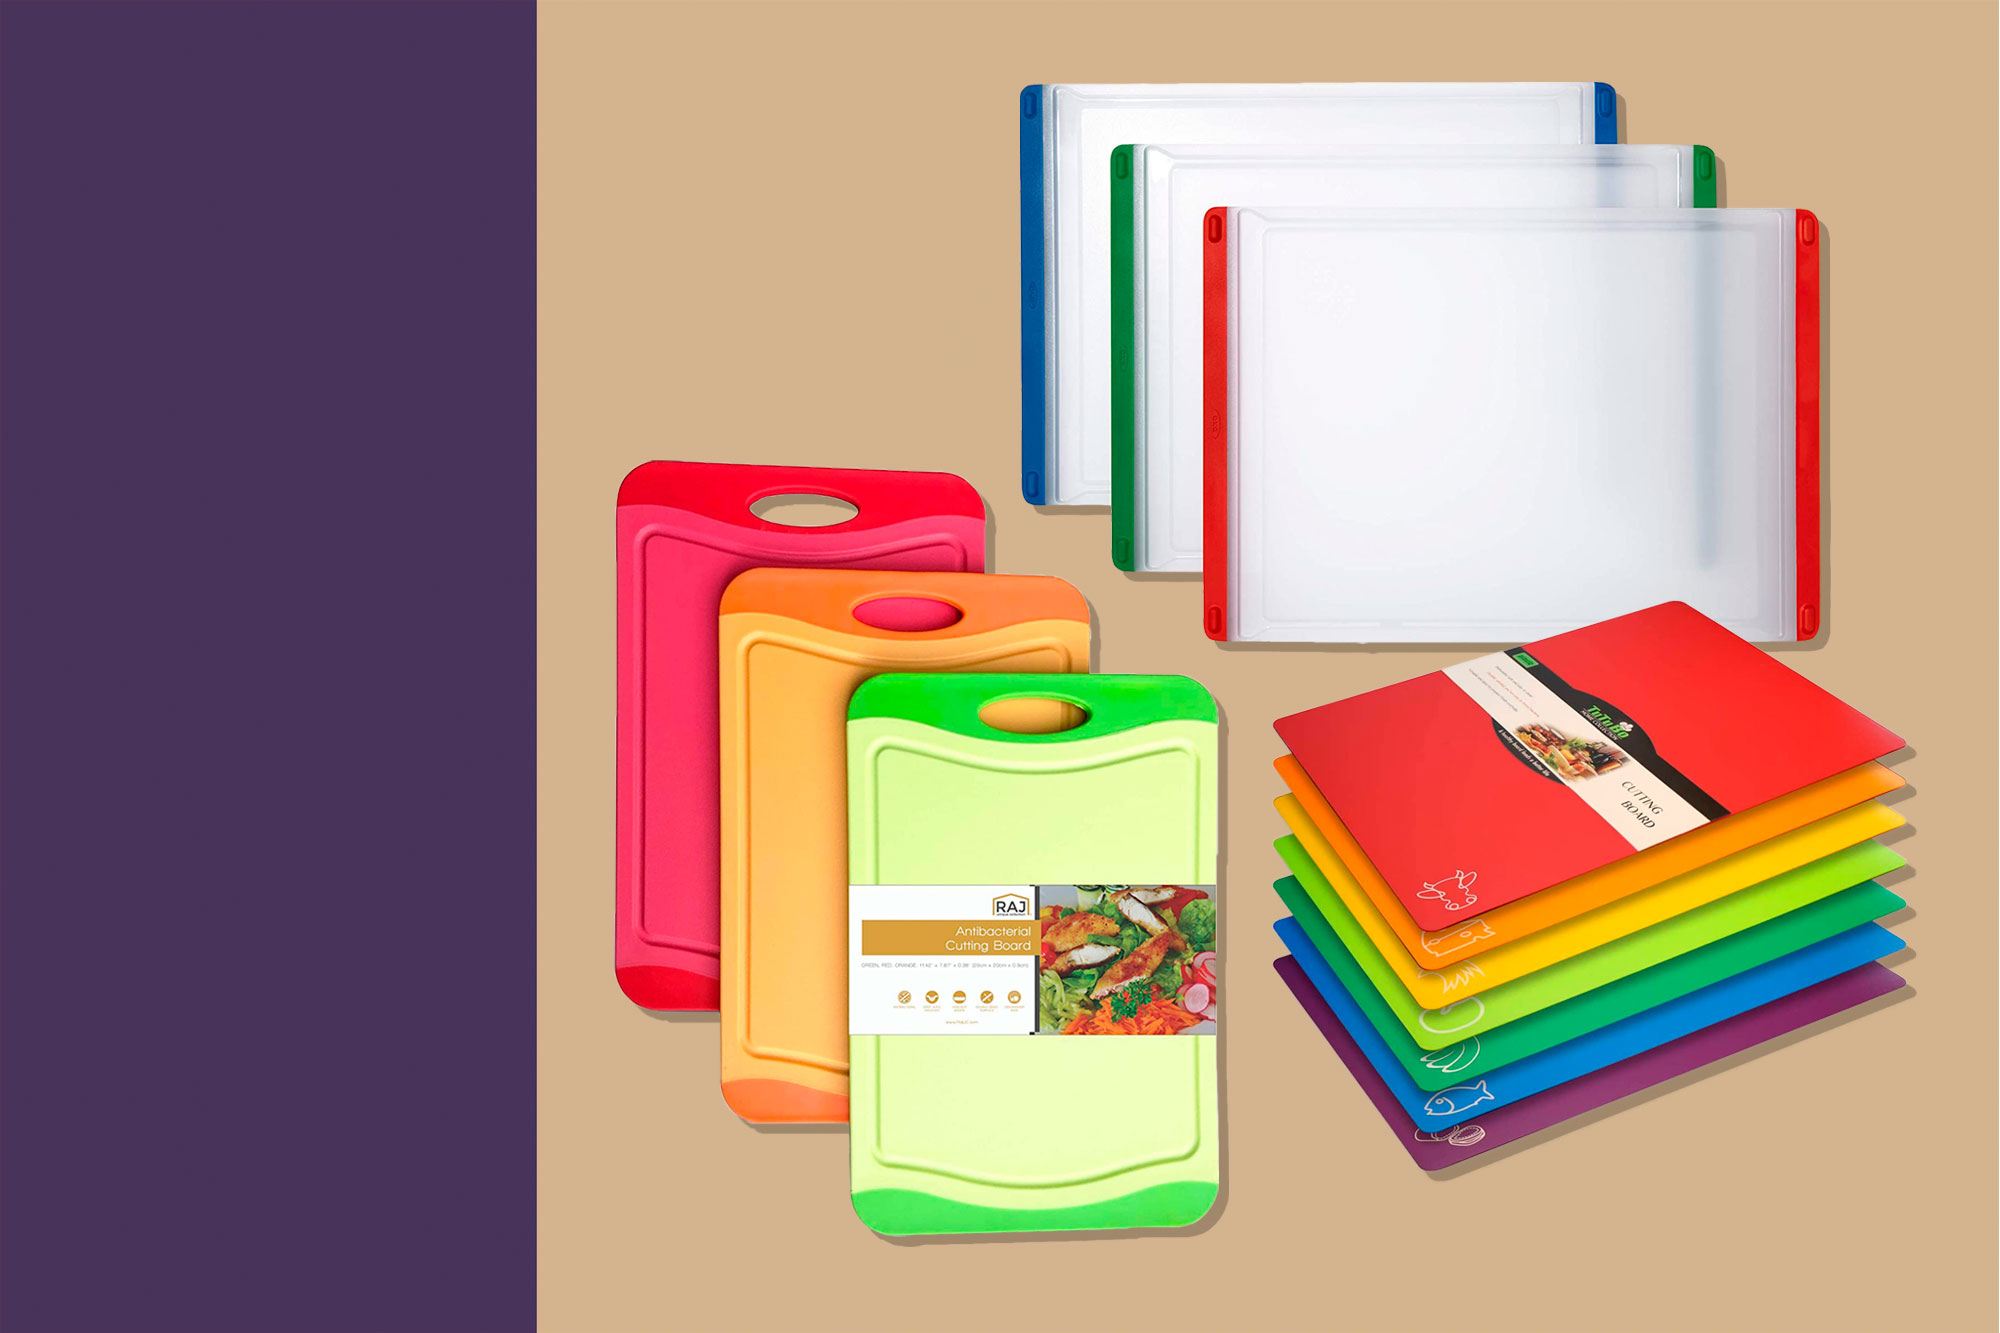 Three sets of color coded cutting boards